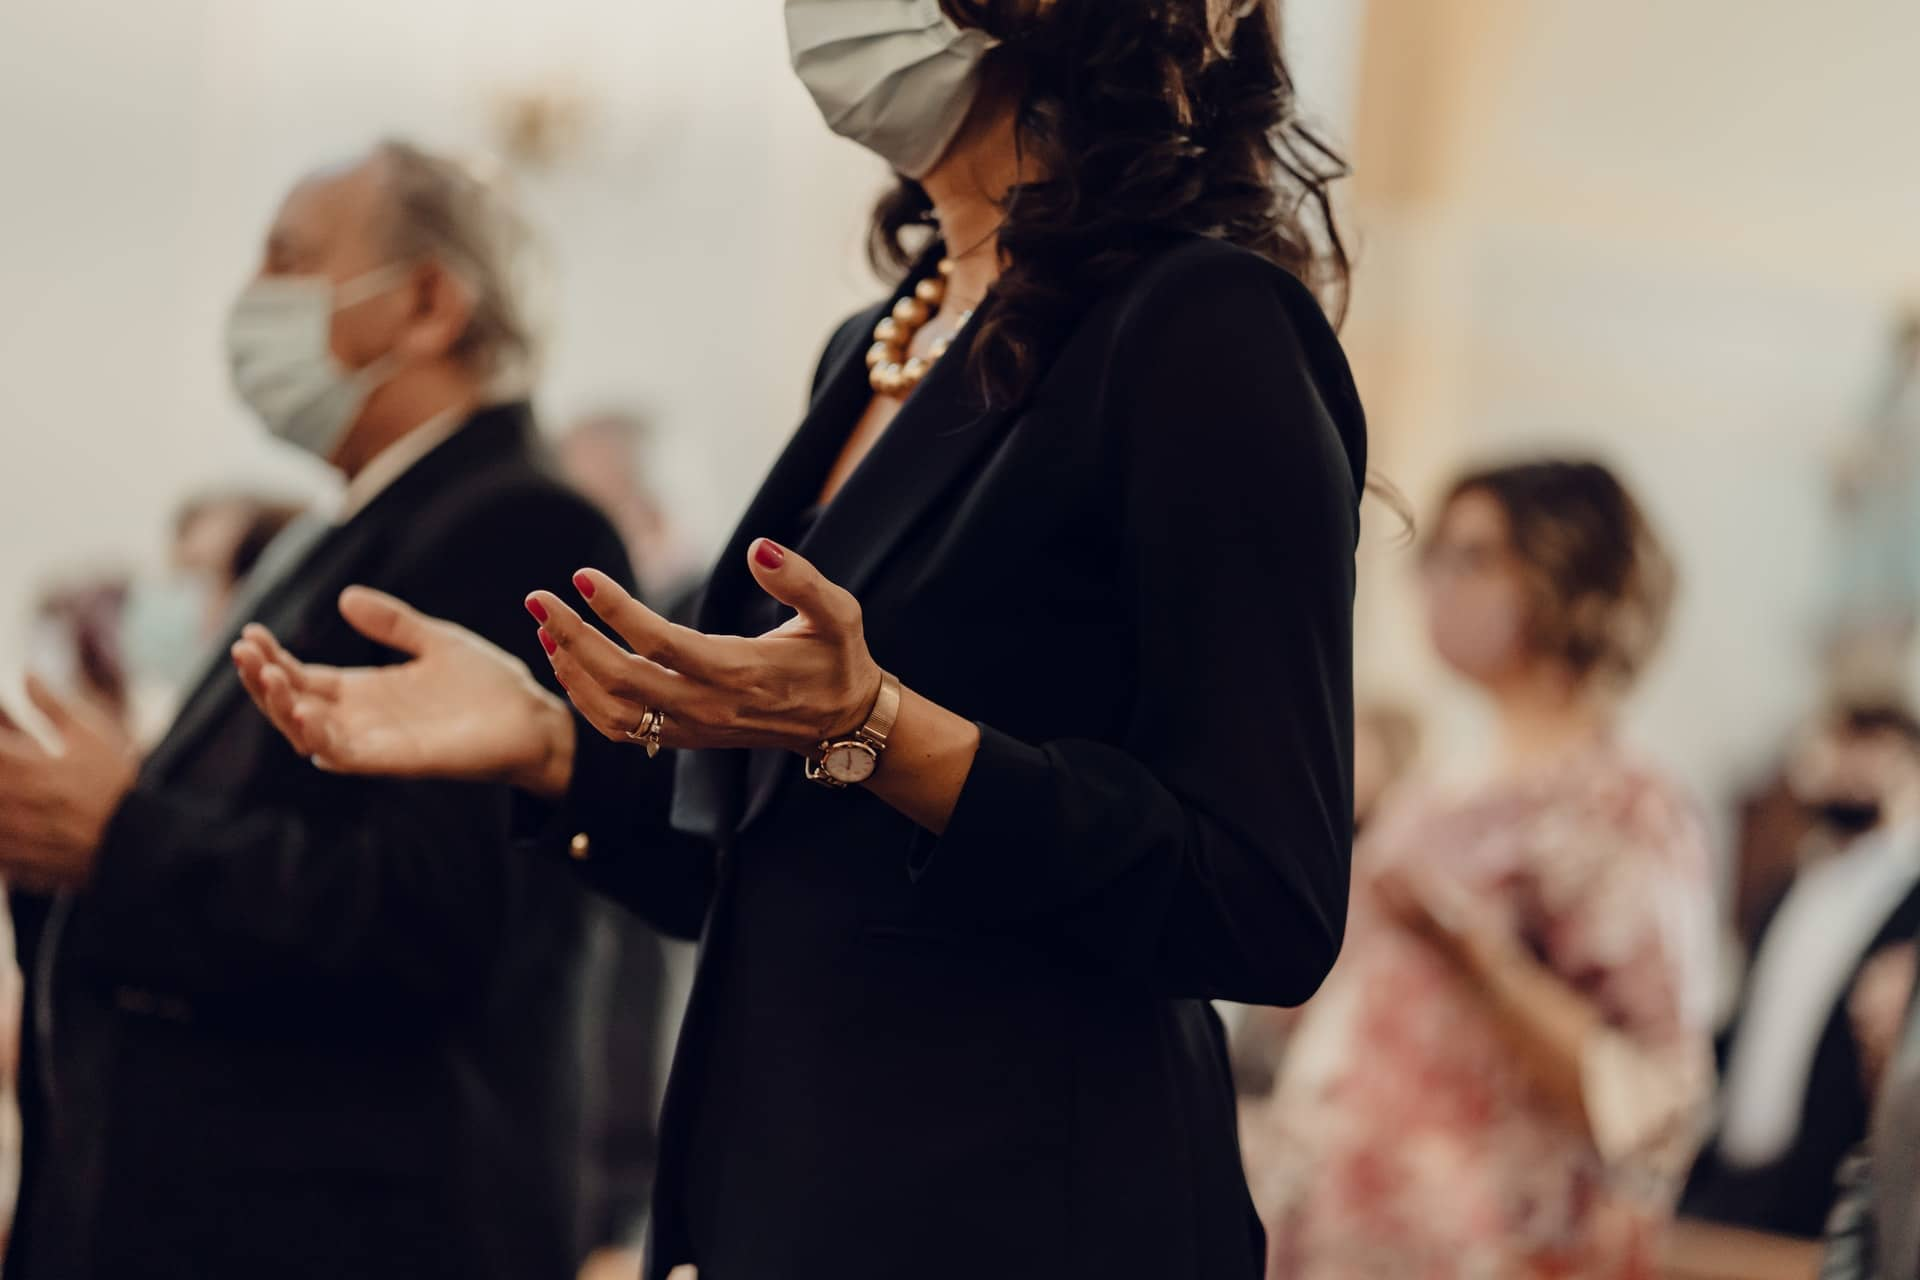 Amid much speculation and pundit prophesying about how the pandemic is affecting congregations and will reshape their future, several denominational groups and research organizations are studying the issue in real-time. This isn't an easy task.